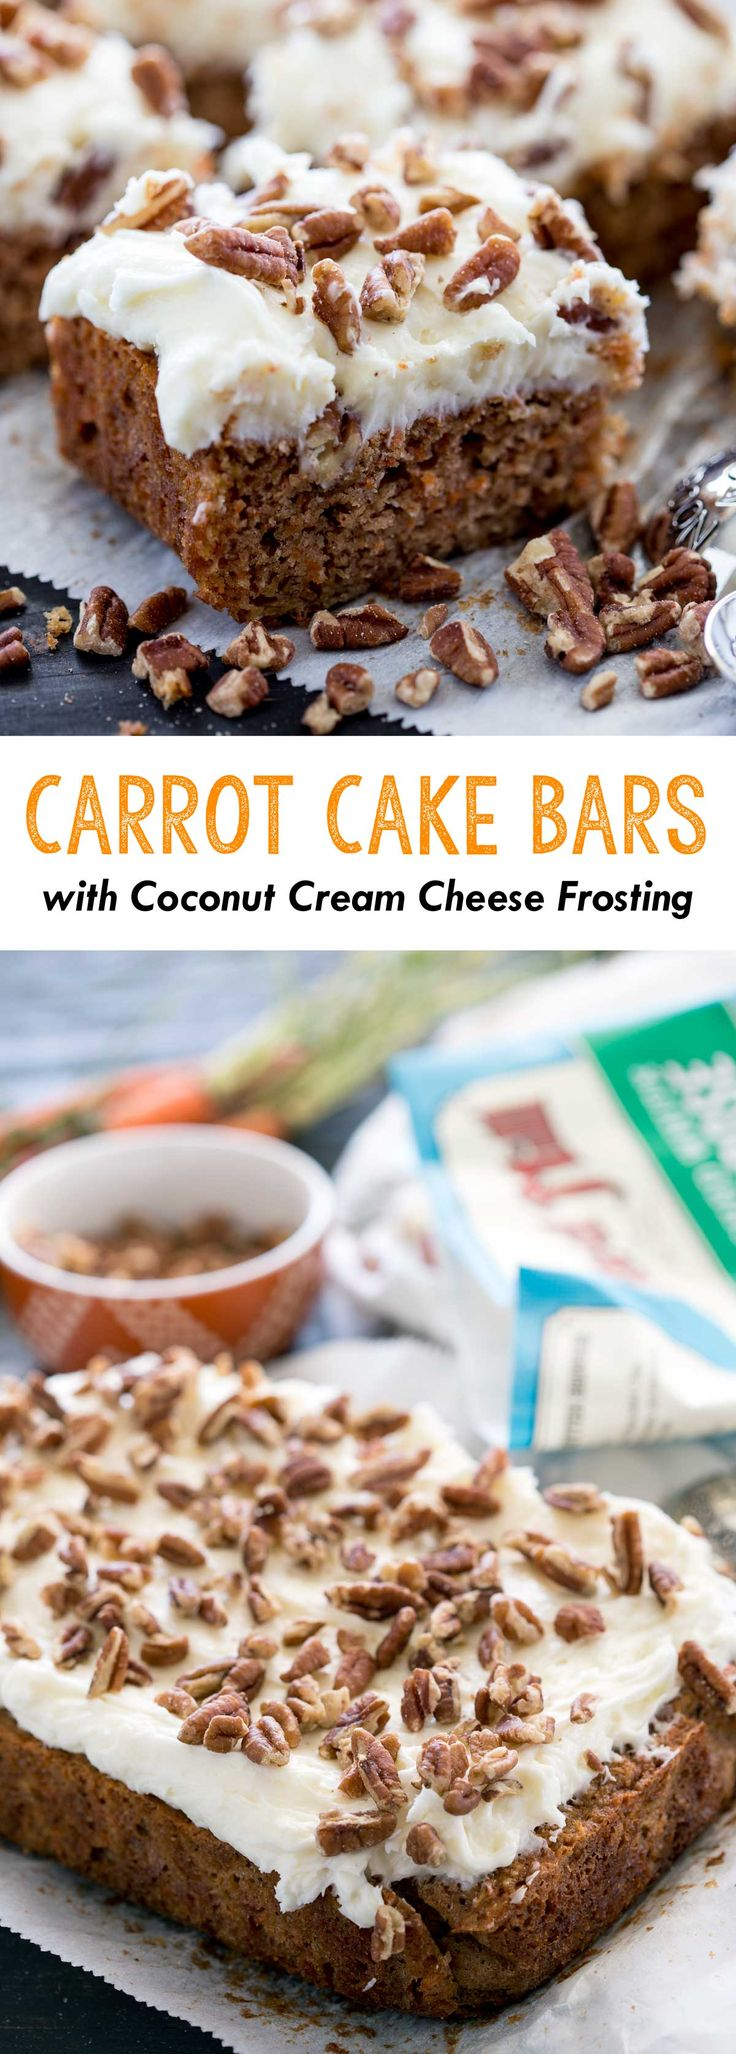 Carrot Cake Bars with Coconut Cream Cheese Frosting. So darn good! #ad #BRMEaster - Eazy Peazy Mealz